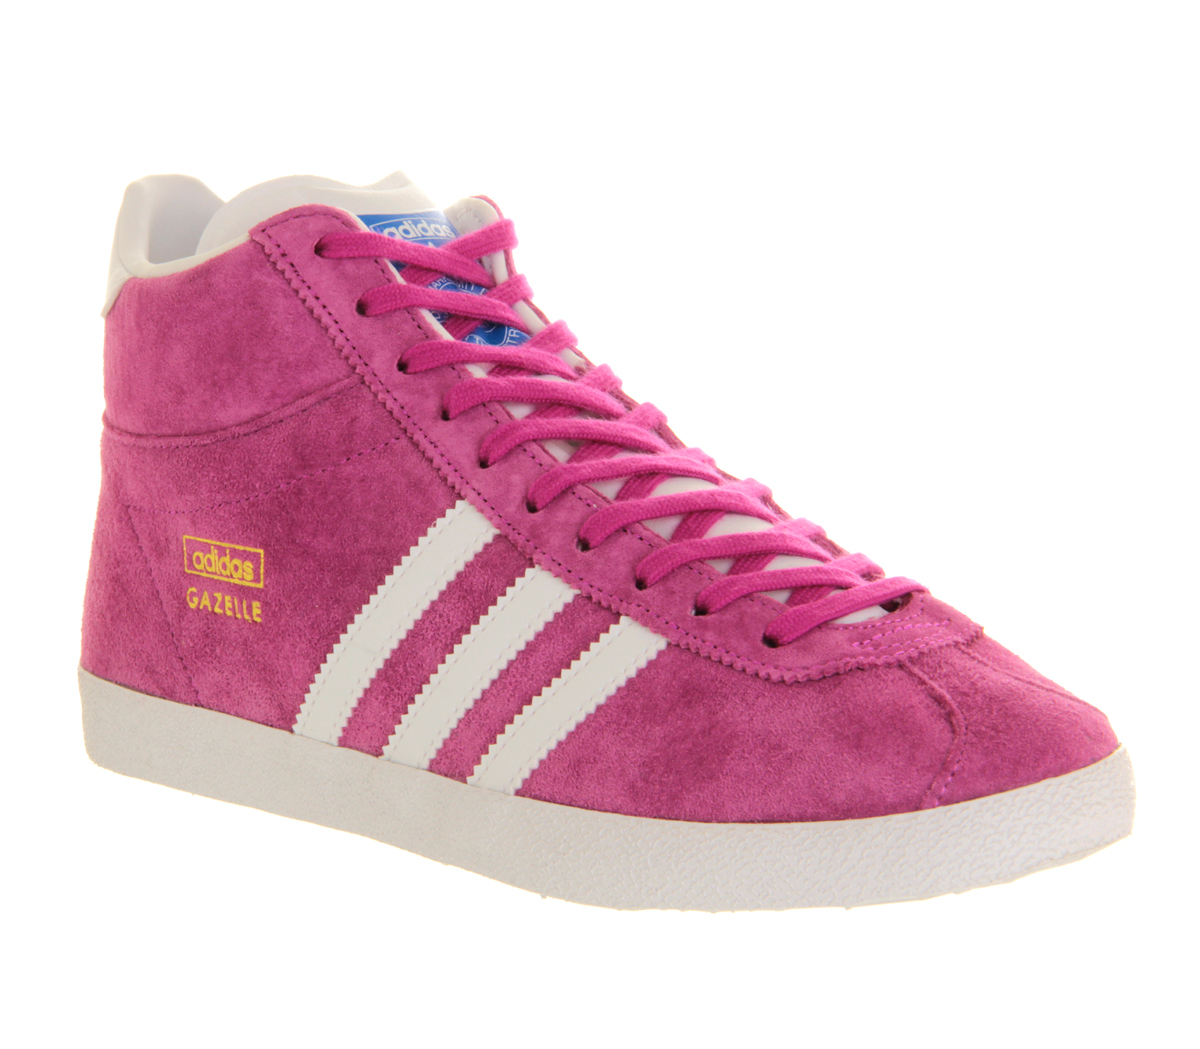 adidas Gazelle Og Mid Trainers in Pink - Lyst